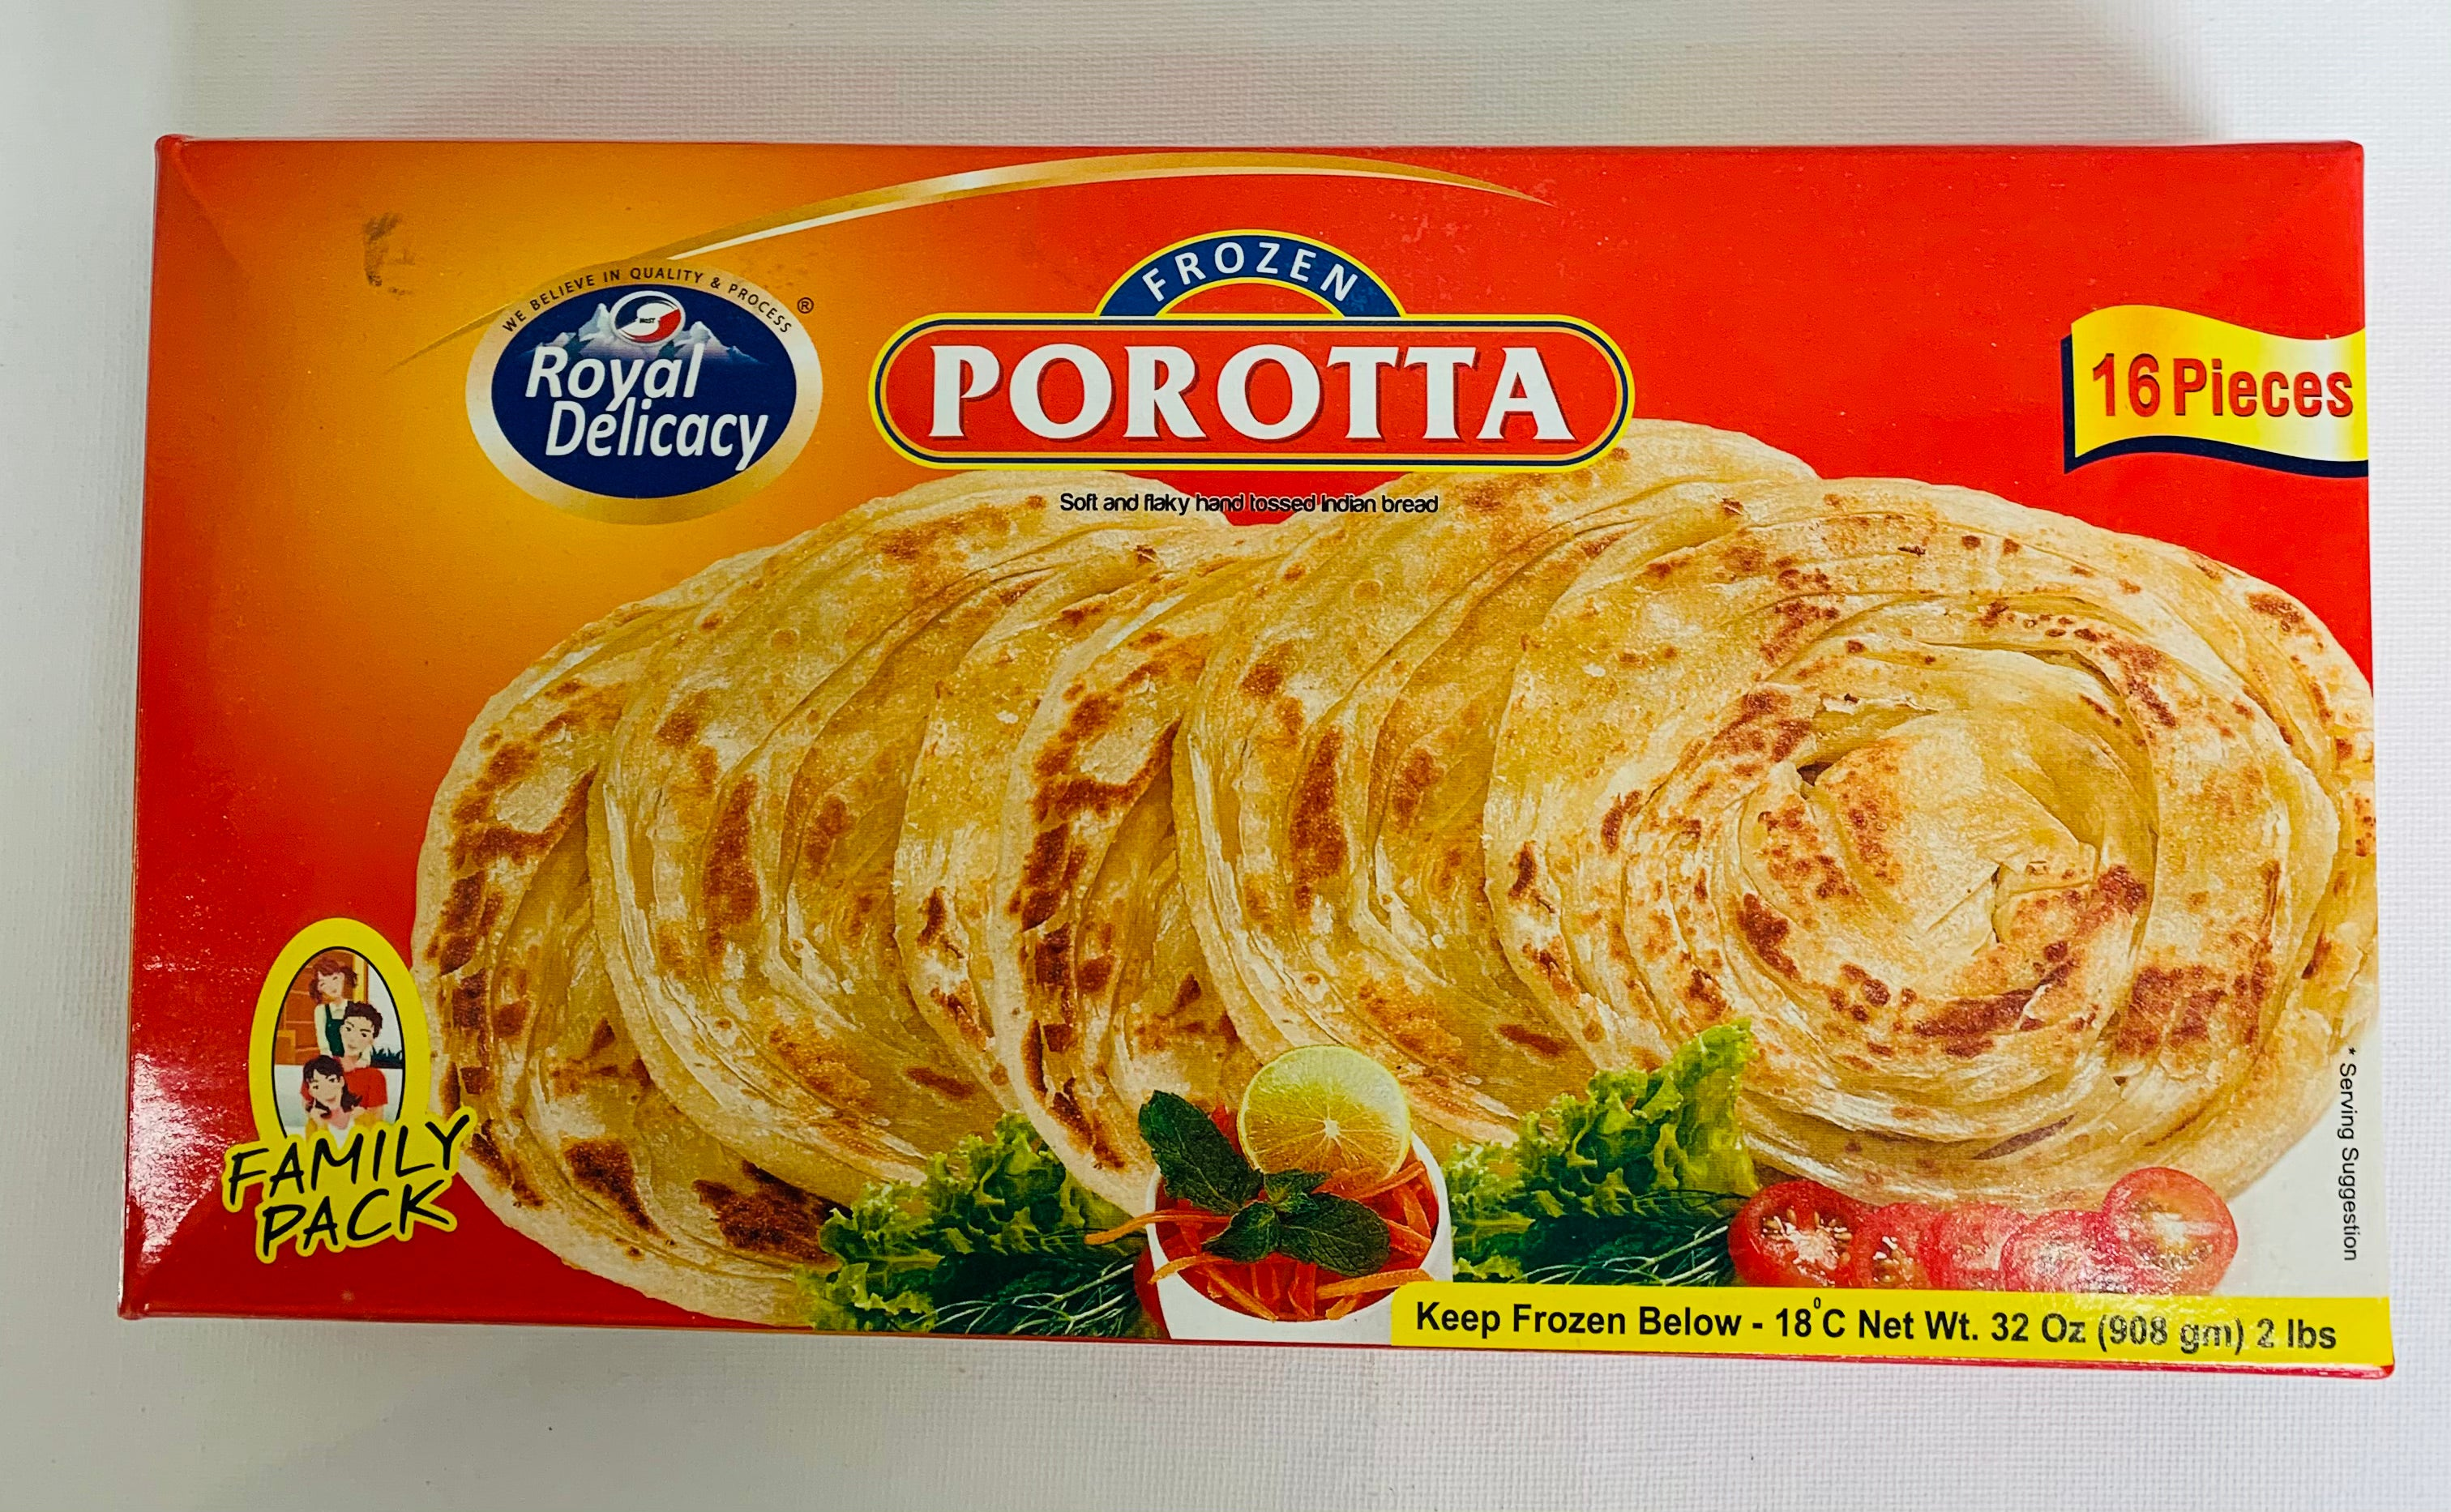 Royal Delicacy Porotta Family Pack (Frozen Bread - 16 Pieces)